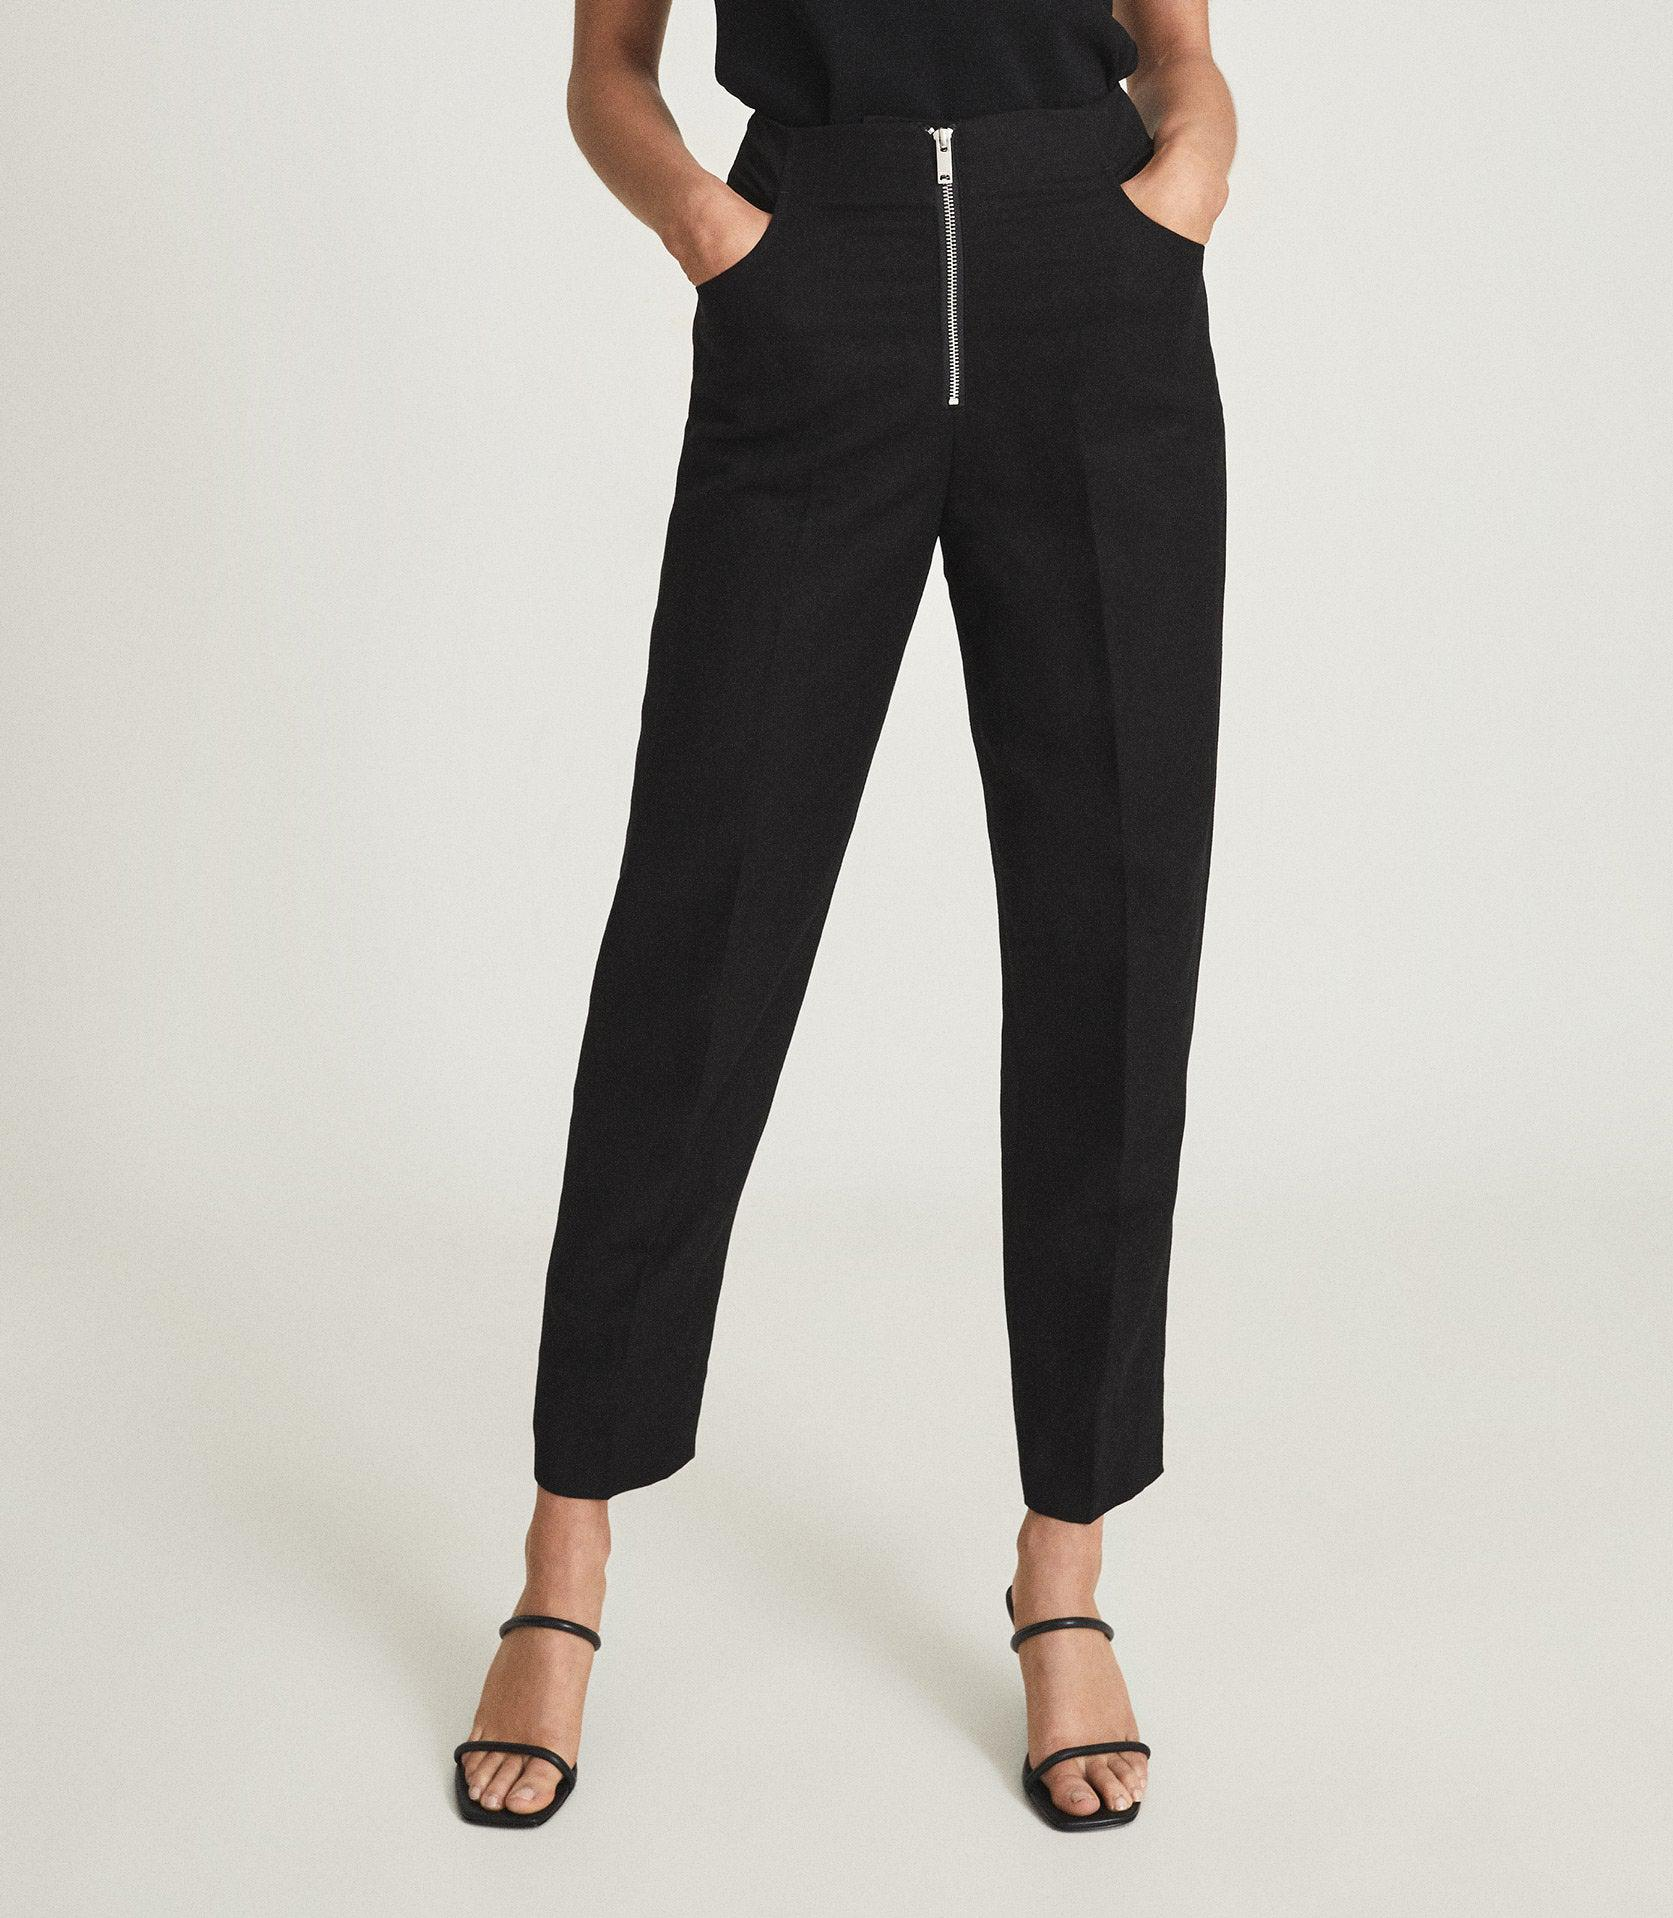 CALLY - LINEN BLEND TROUSERS WITH EXPOSED ZIP 1